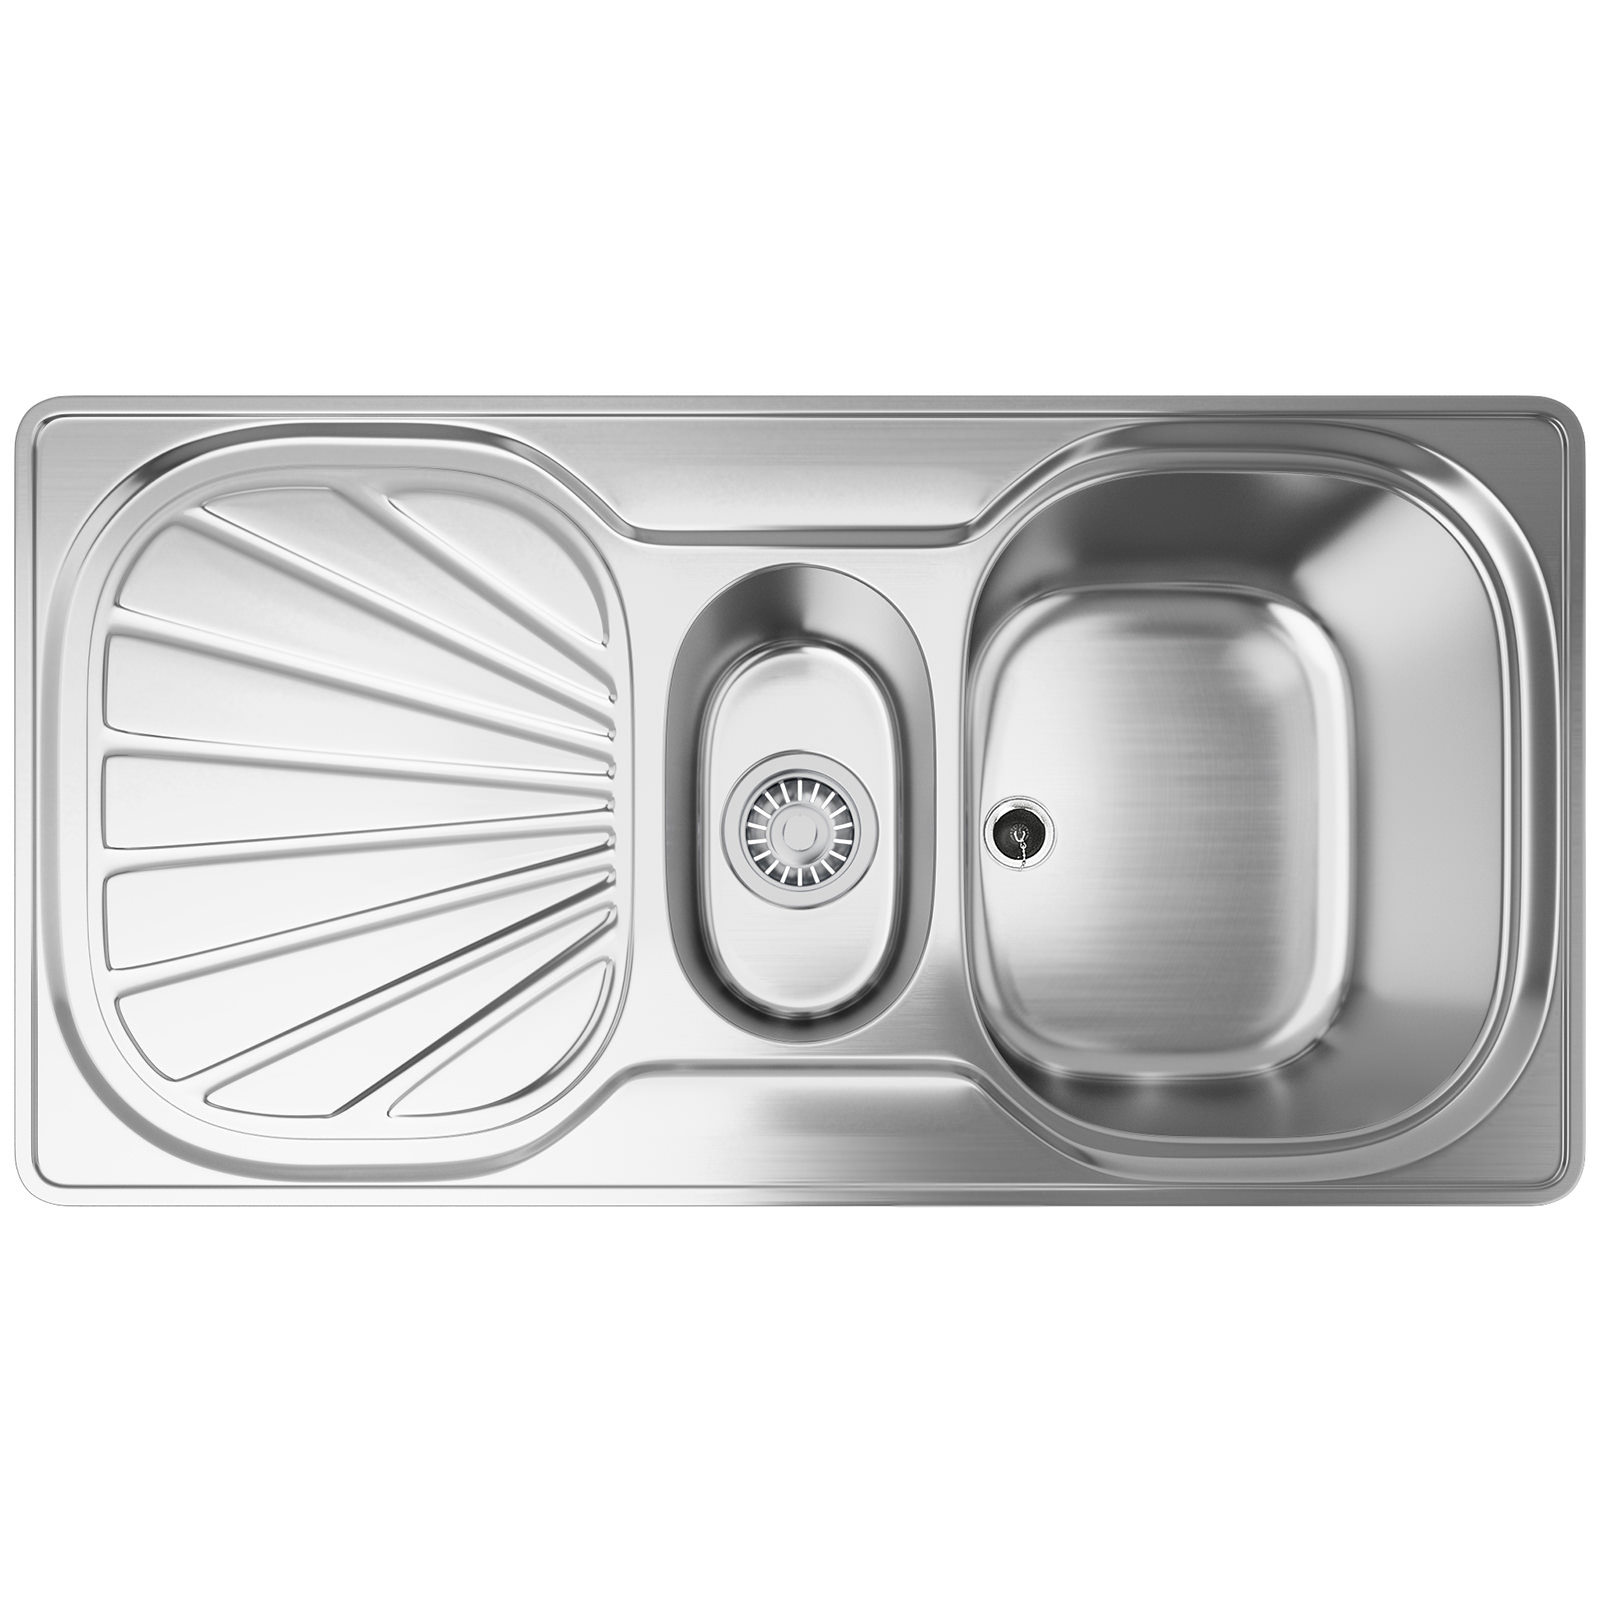 Franke Erica EUX 651 Stainless Steel 1.5 Bowl Kitchen Inset Sink ...